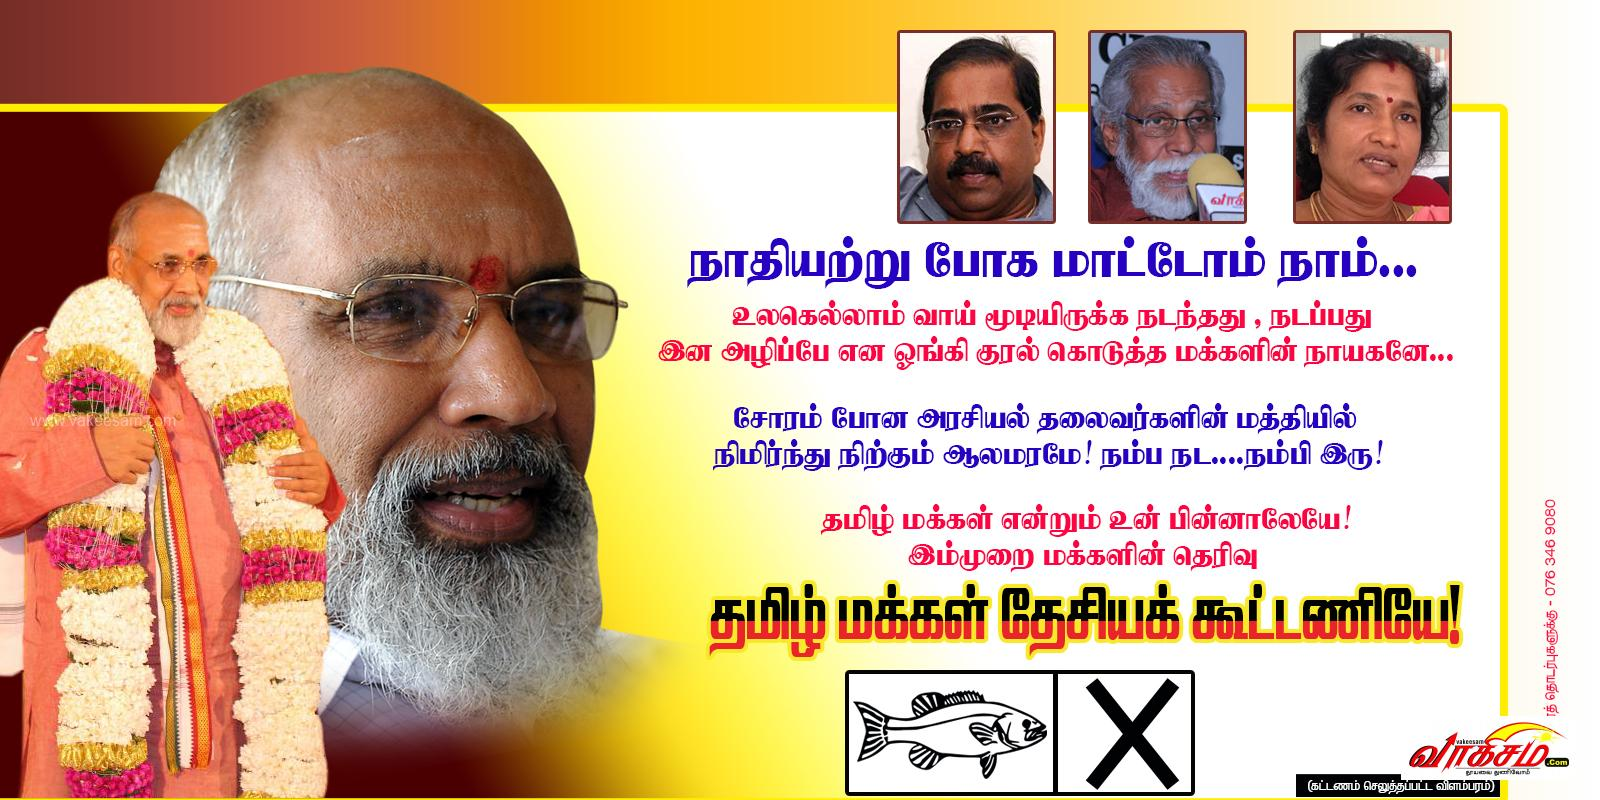 http://www.vakeesam.com/wp-content/uploads/2020/06/CV-Election-Ads-01.jpg